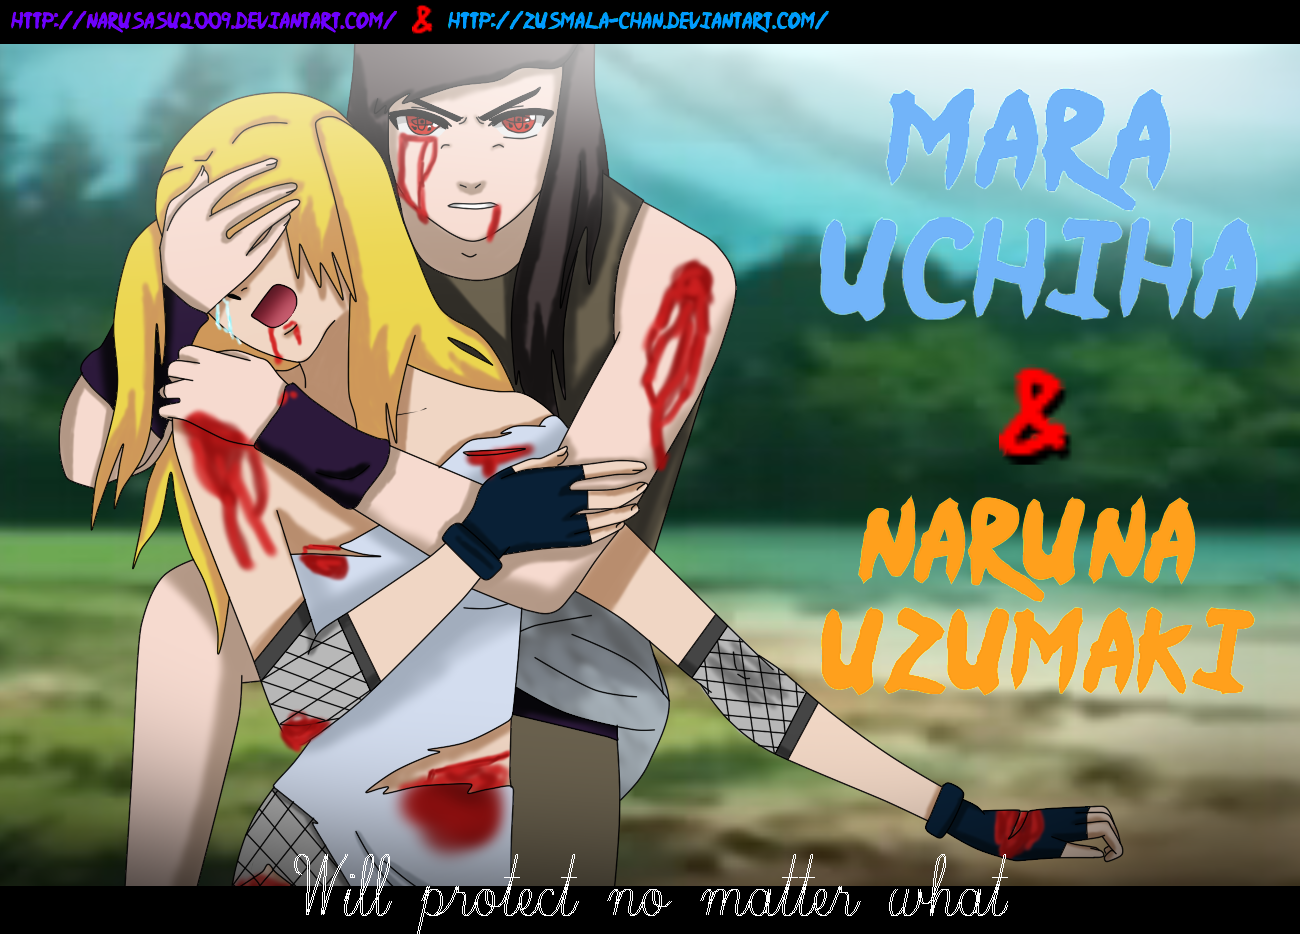 naruna chat rooms Meet single men in naruna va online & chat in the forums dhu is a 100% free dating site to find single men in naruna.